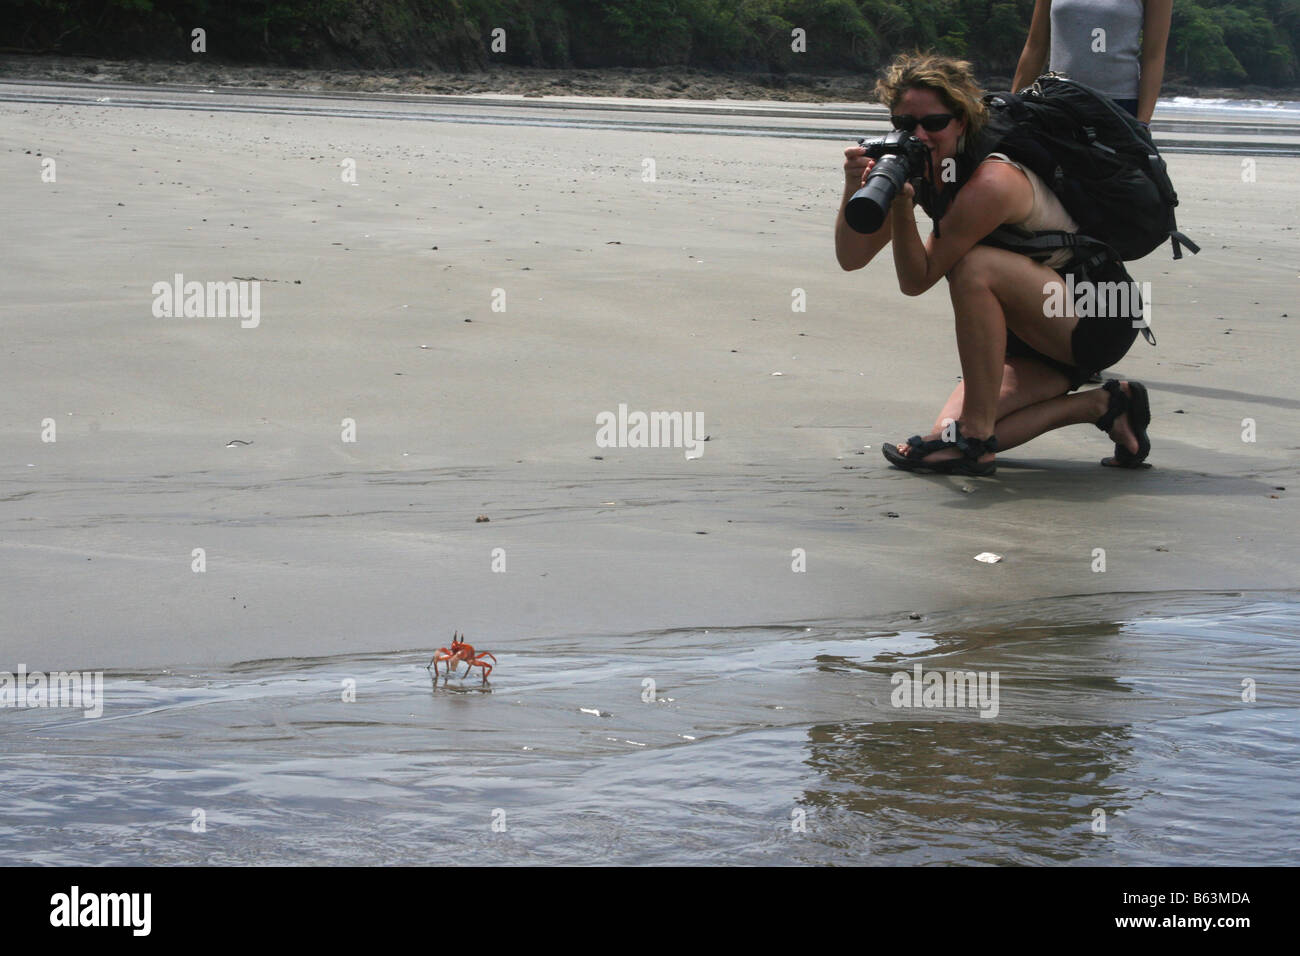 Tourist on a beach in Costa Rica takes a picture of a crab. - Stock Image